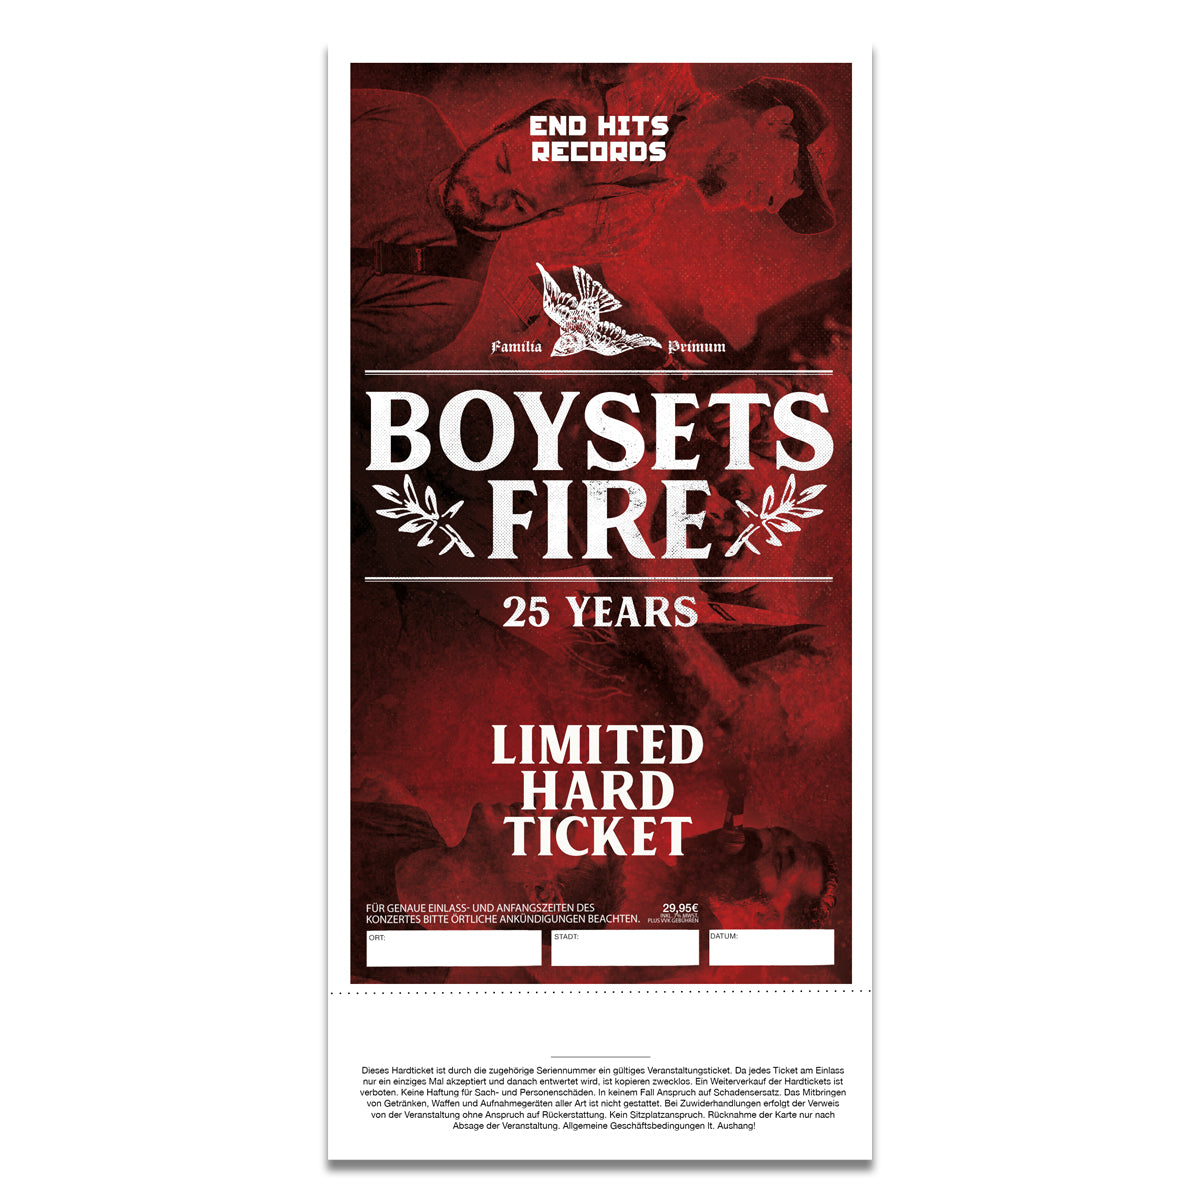 BOYSETSFIRE - 02.12.2019 DE, Hamburg @ Grosse Freiheit - Limited Hard Ticket